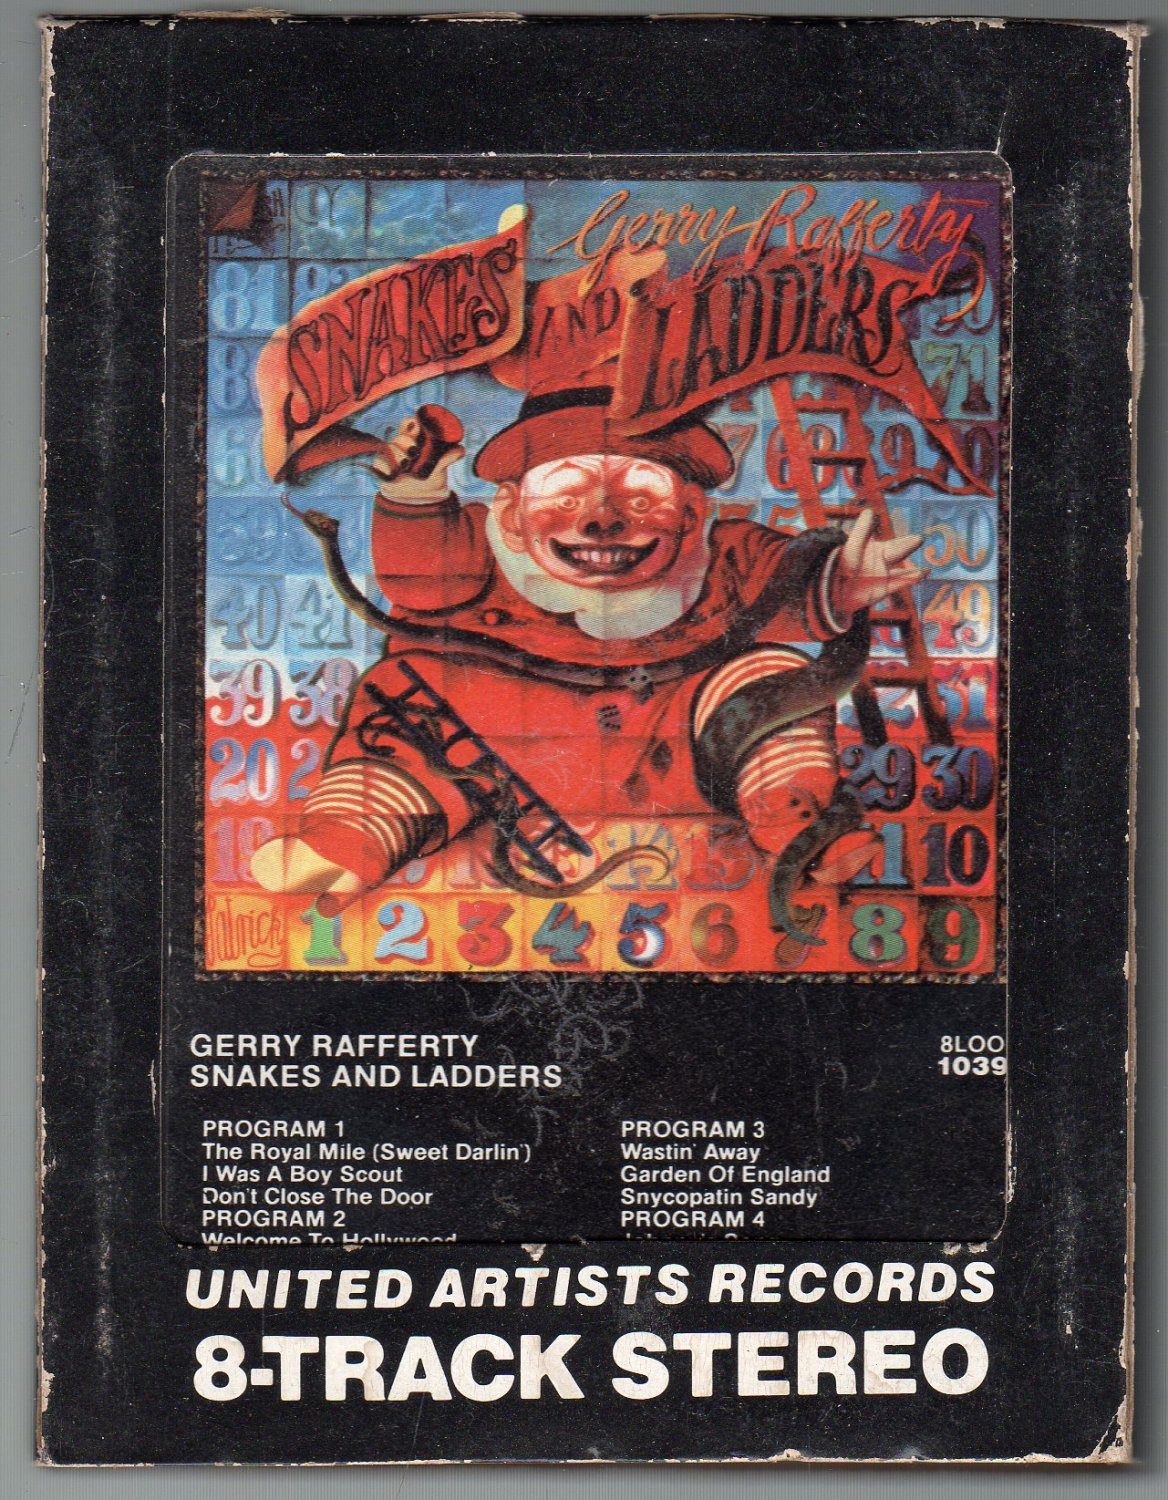 Gerry Rafferty - Snakes And Ladders 1980 UA A29 8-track tape